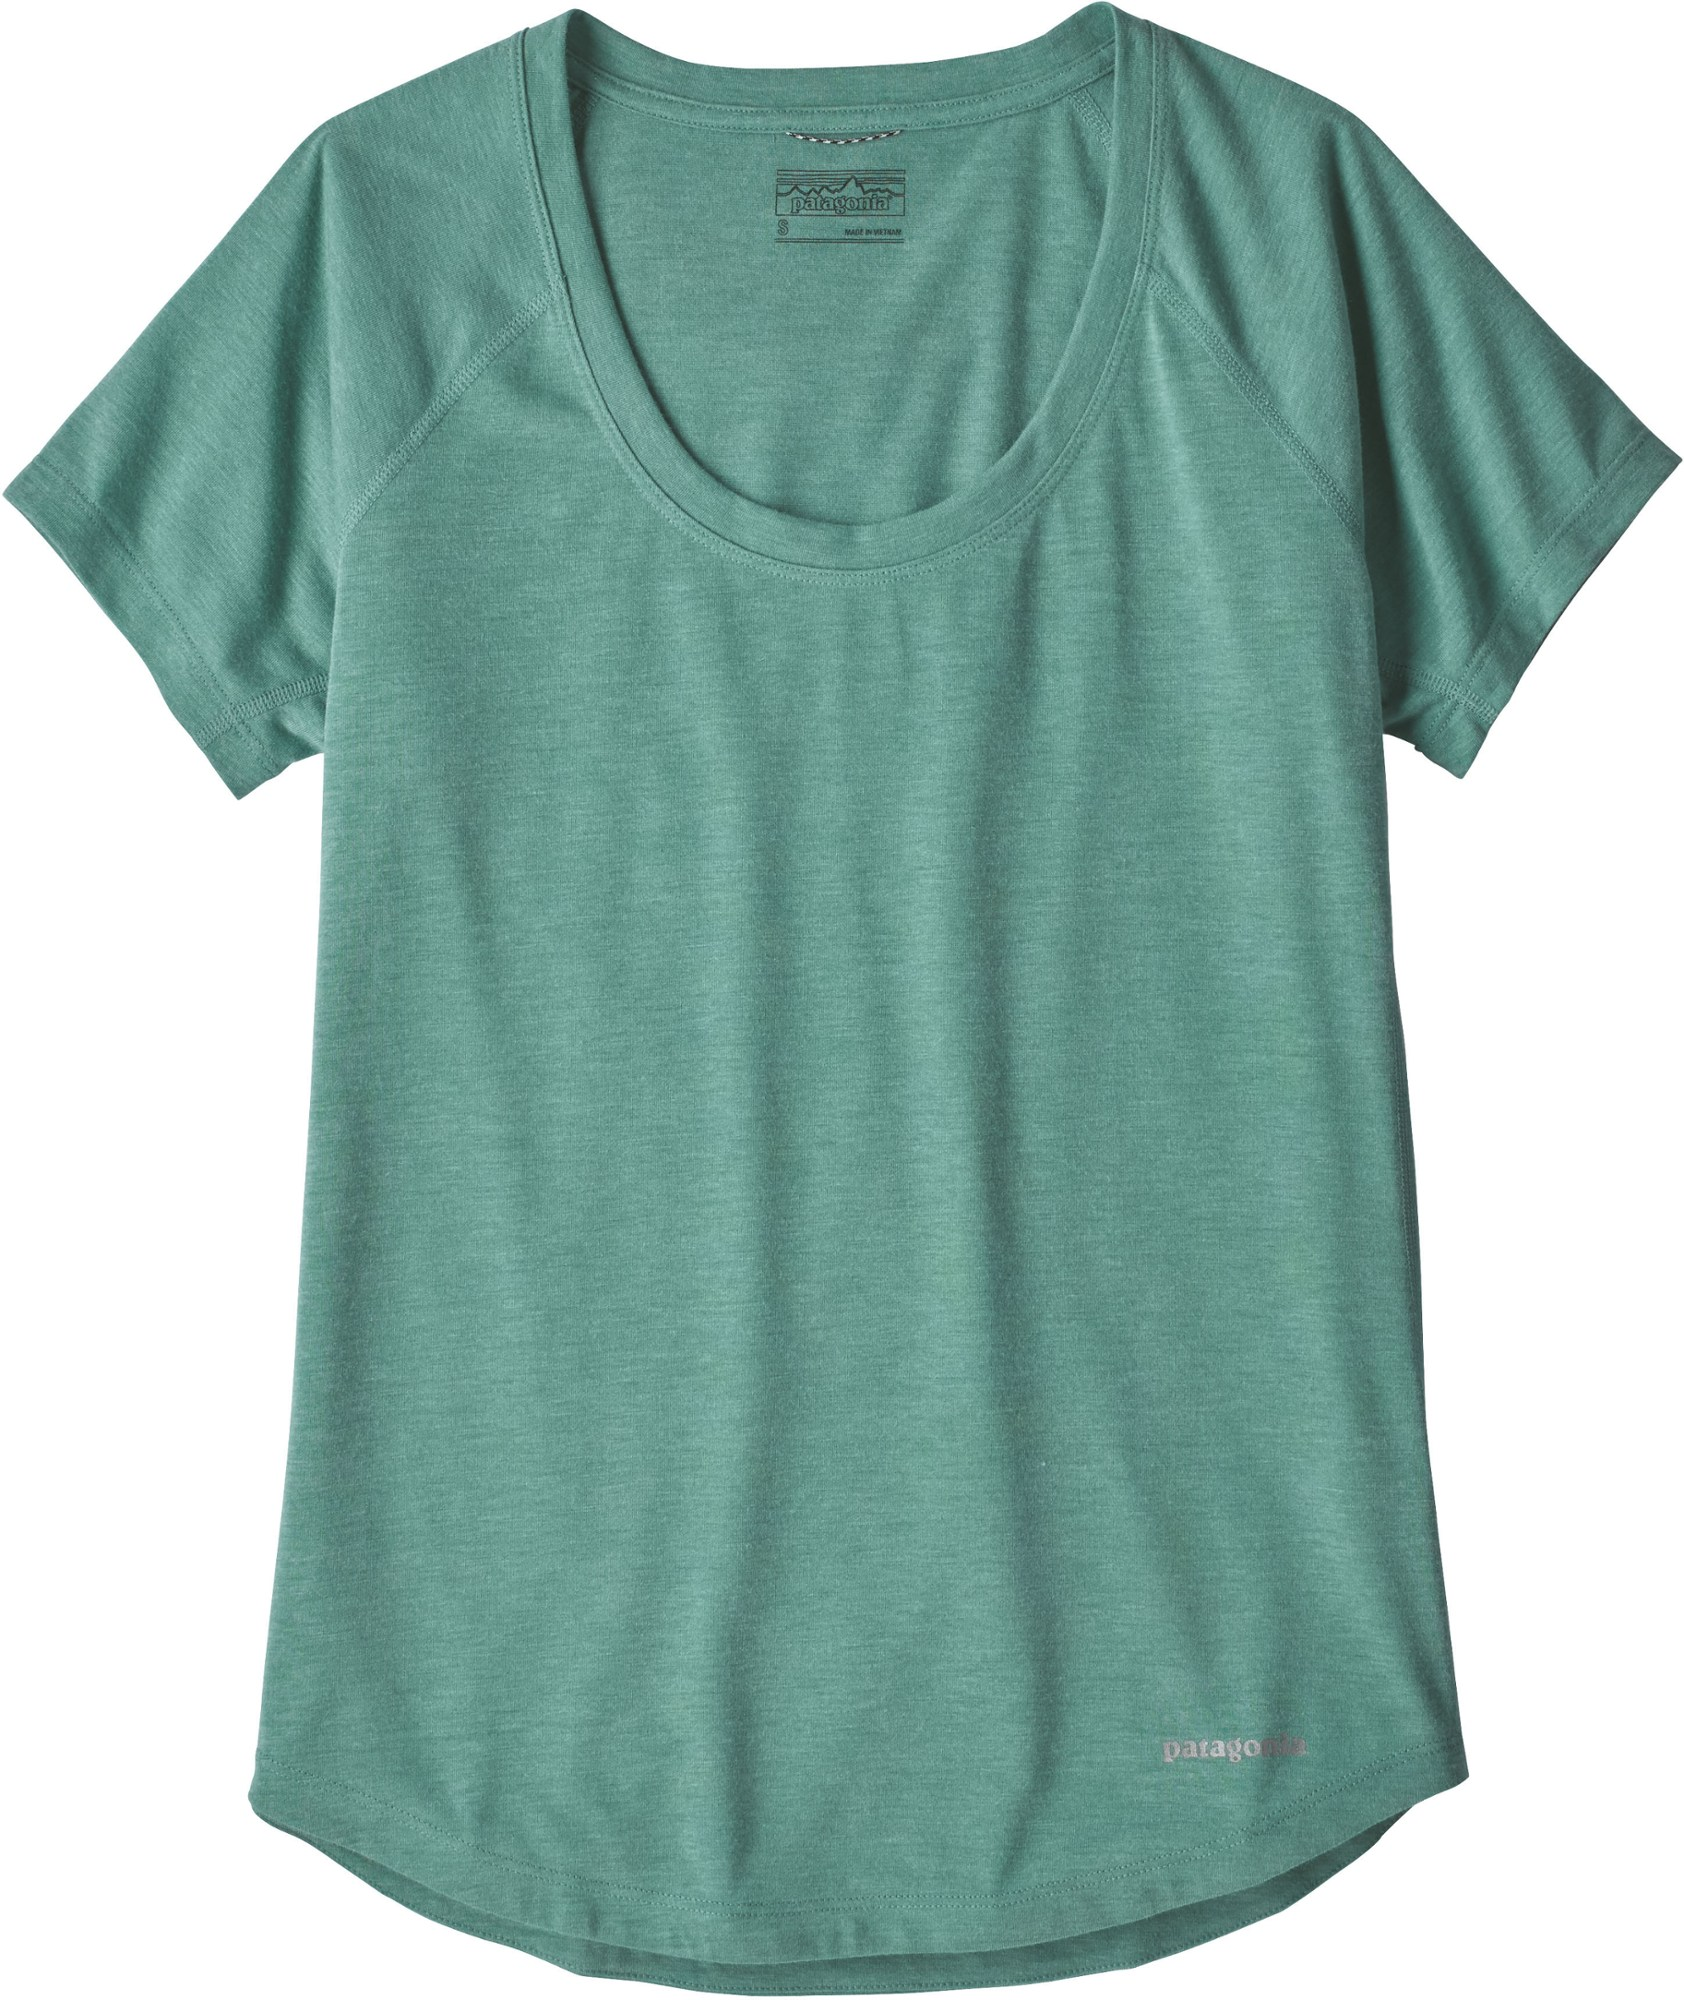 Patagonia Nine Trails Shirt - Women's